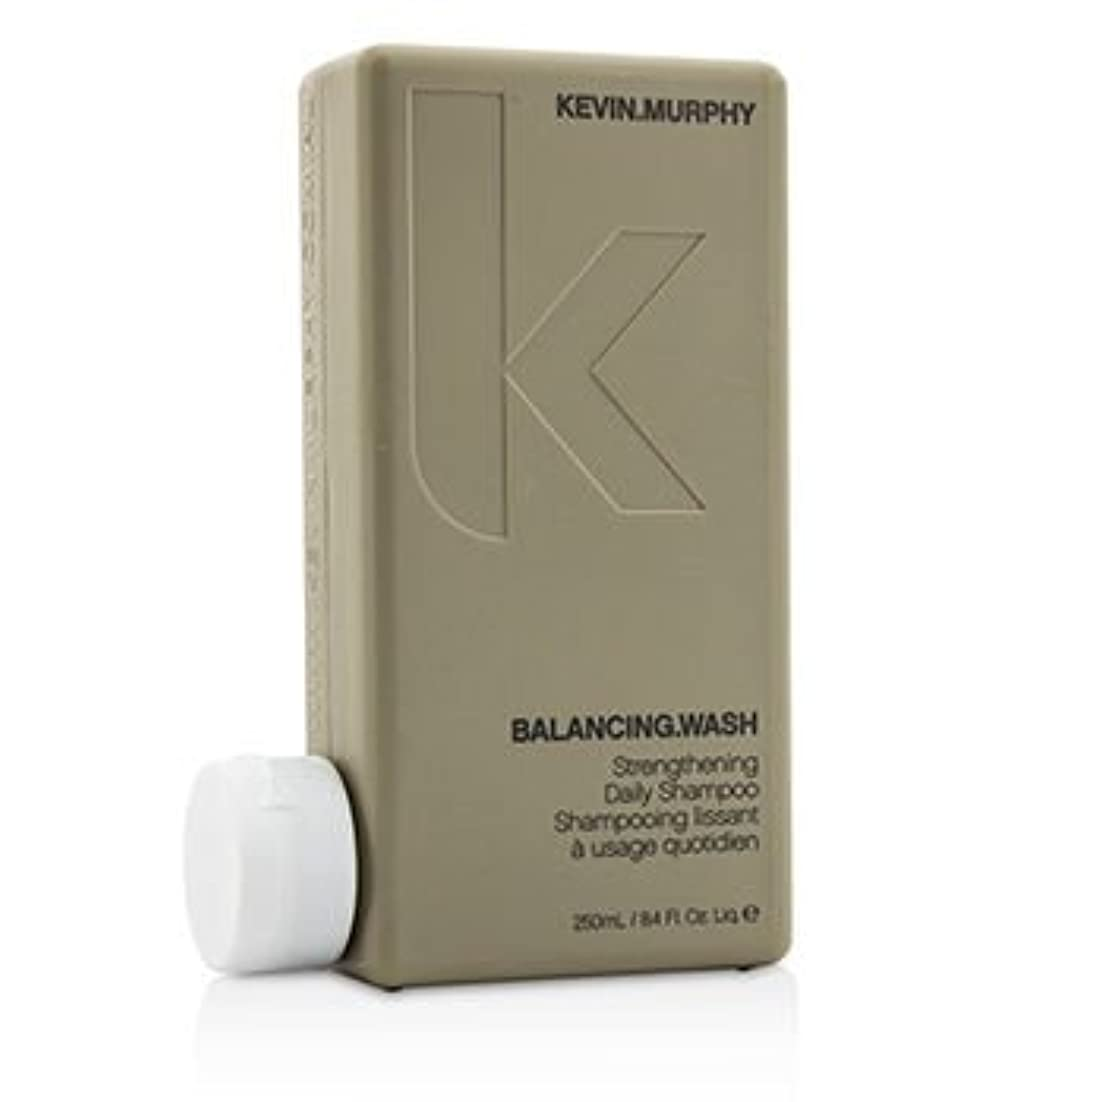 と組む脅威ウッズ[Kevin.Murphy] Balancing.Wash (Strengthening Daily Shampoo - For Coloured Hair) 250ml/8.4oz